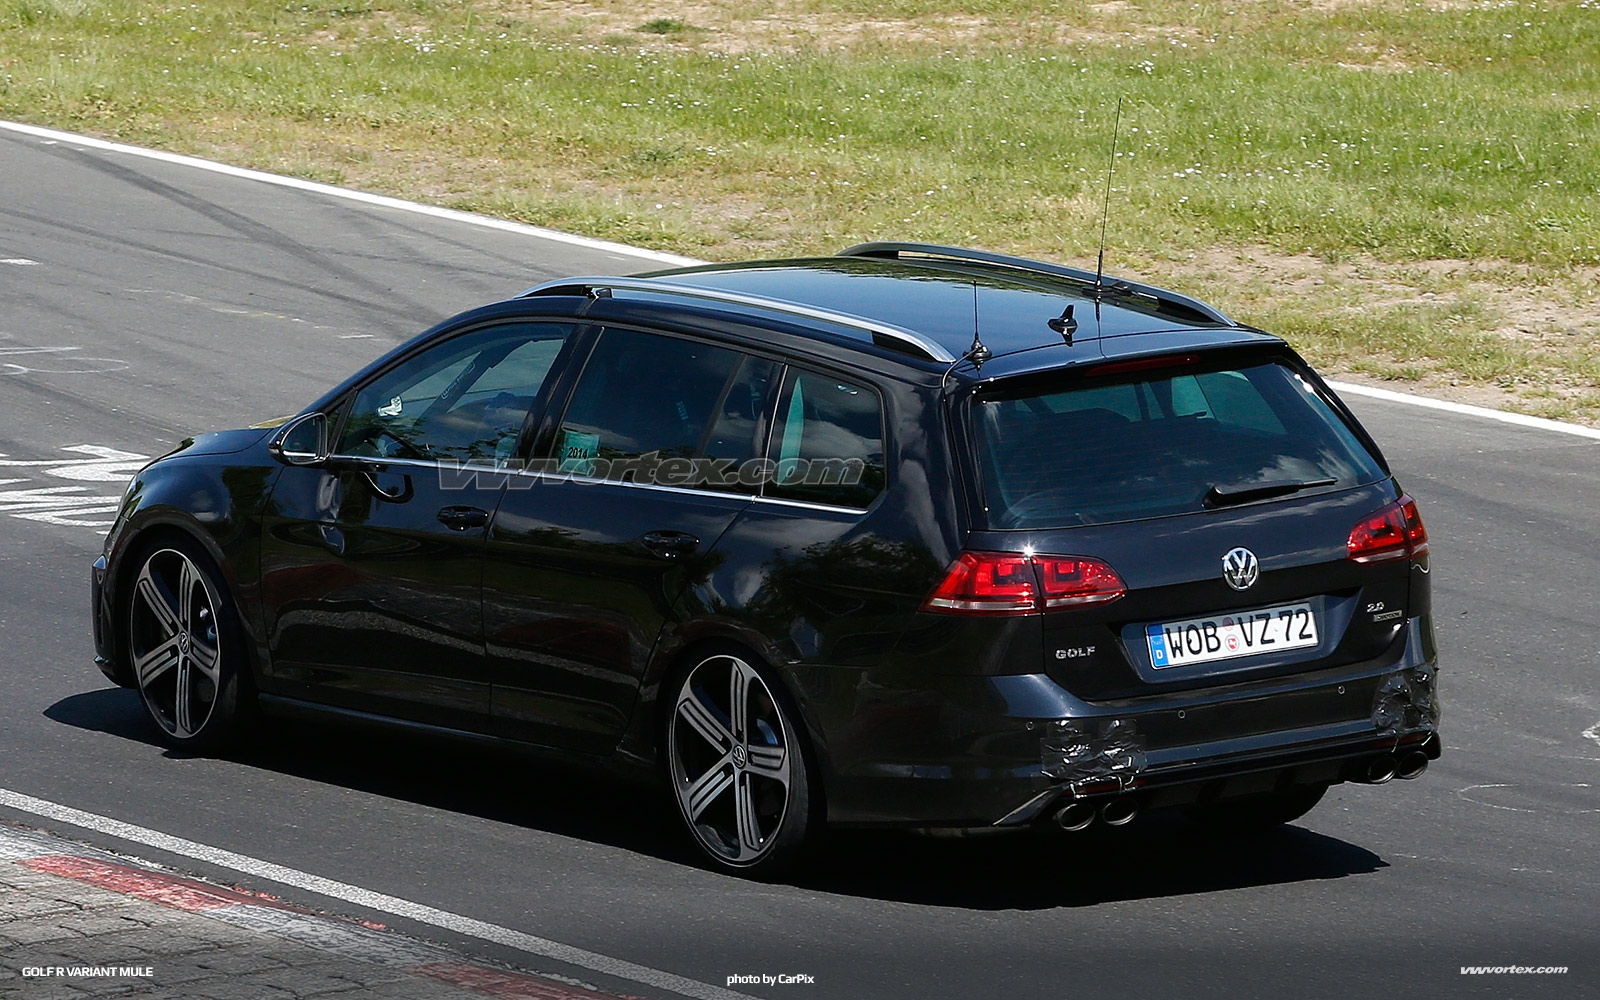 vw golf r variant mule 384 600x375